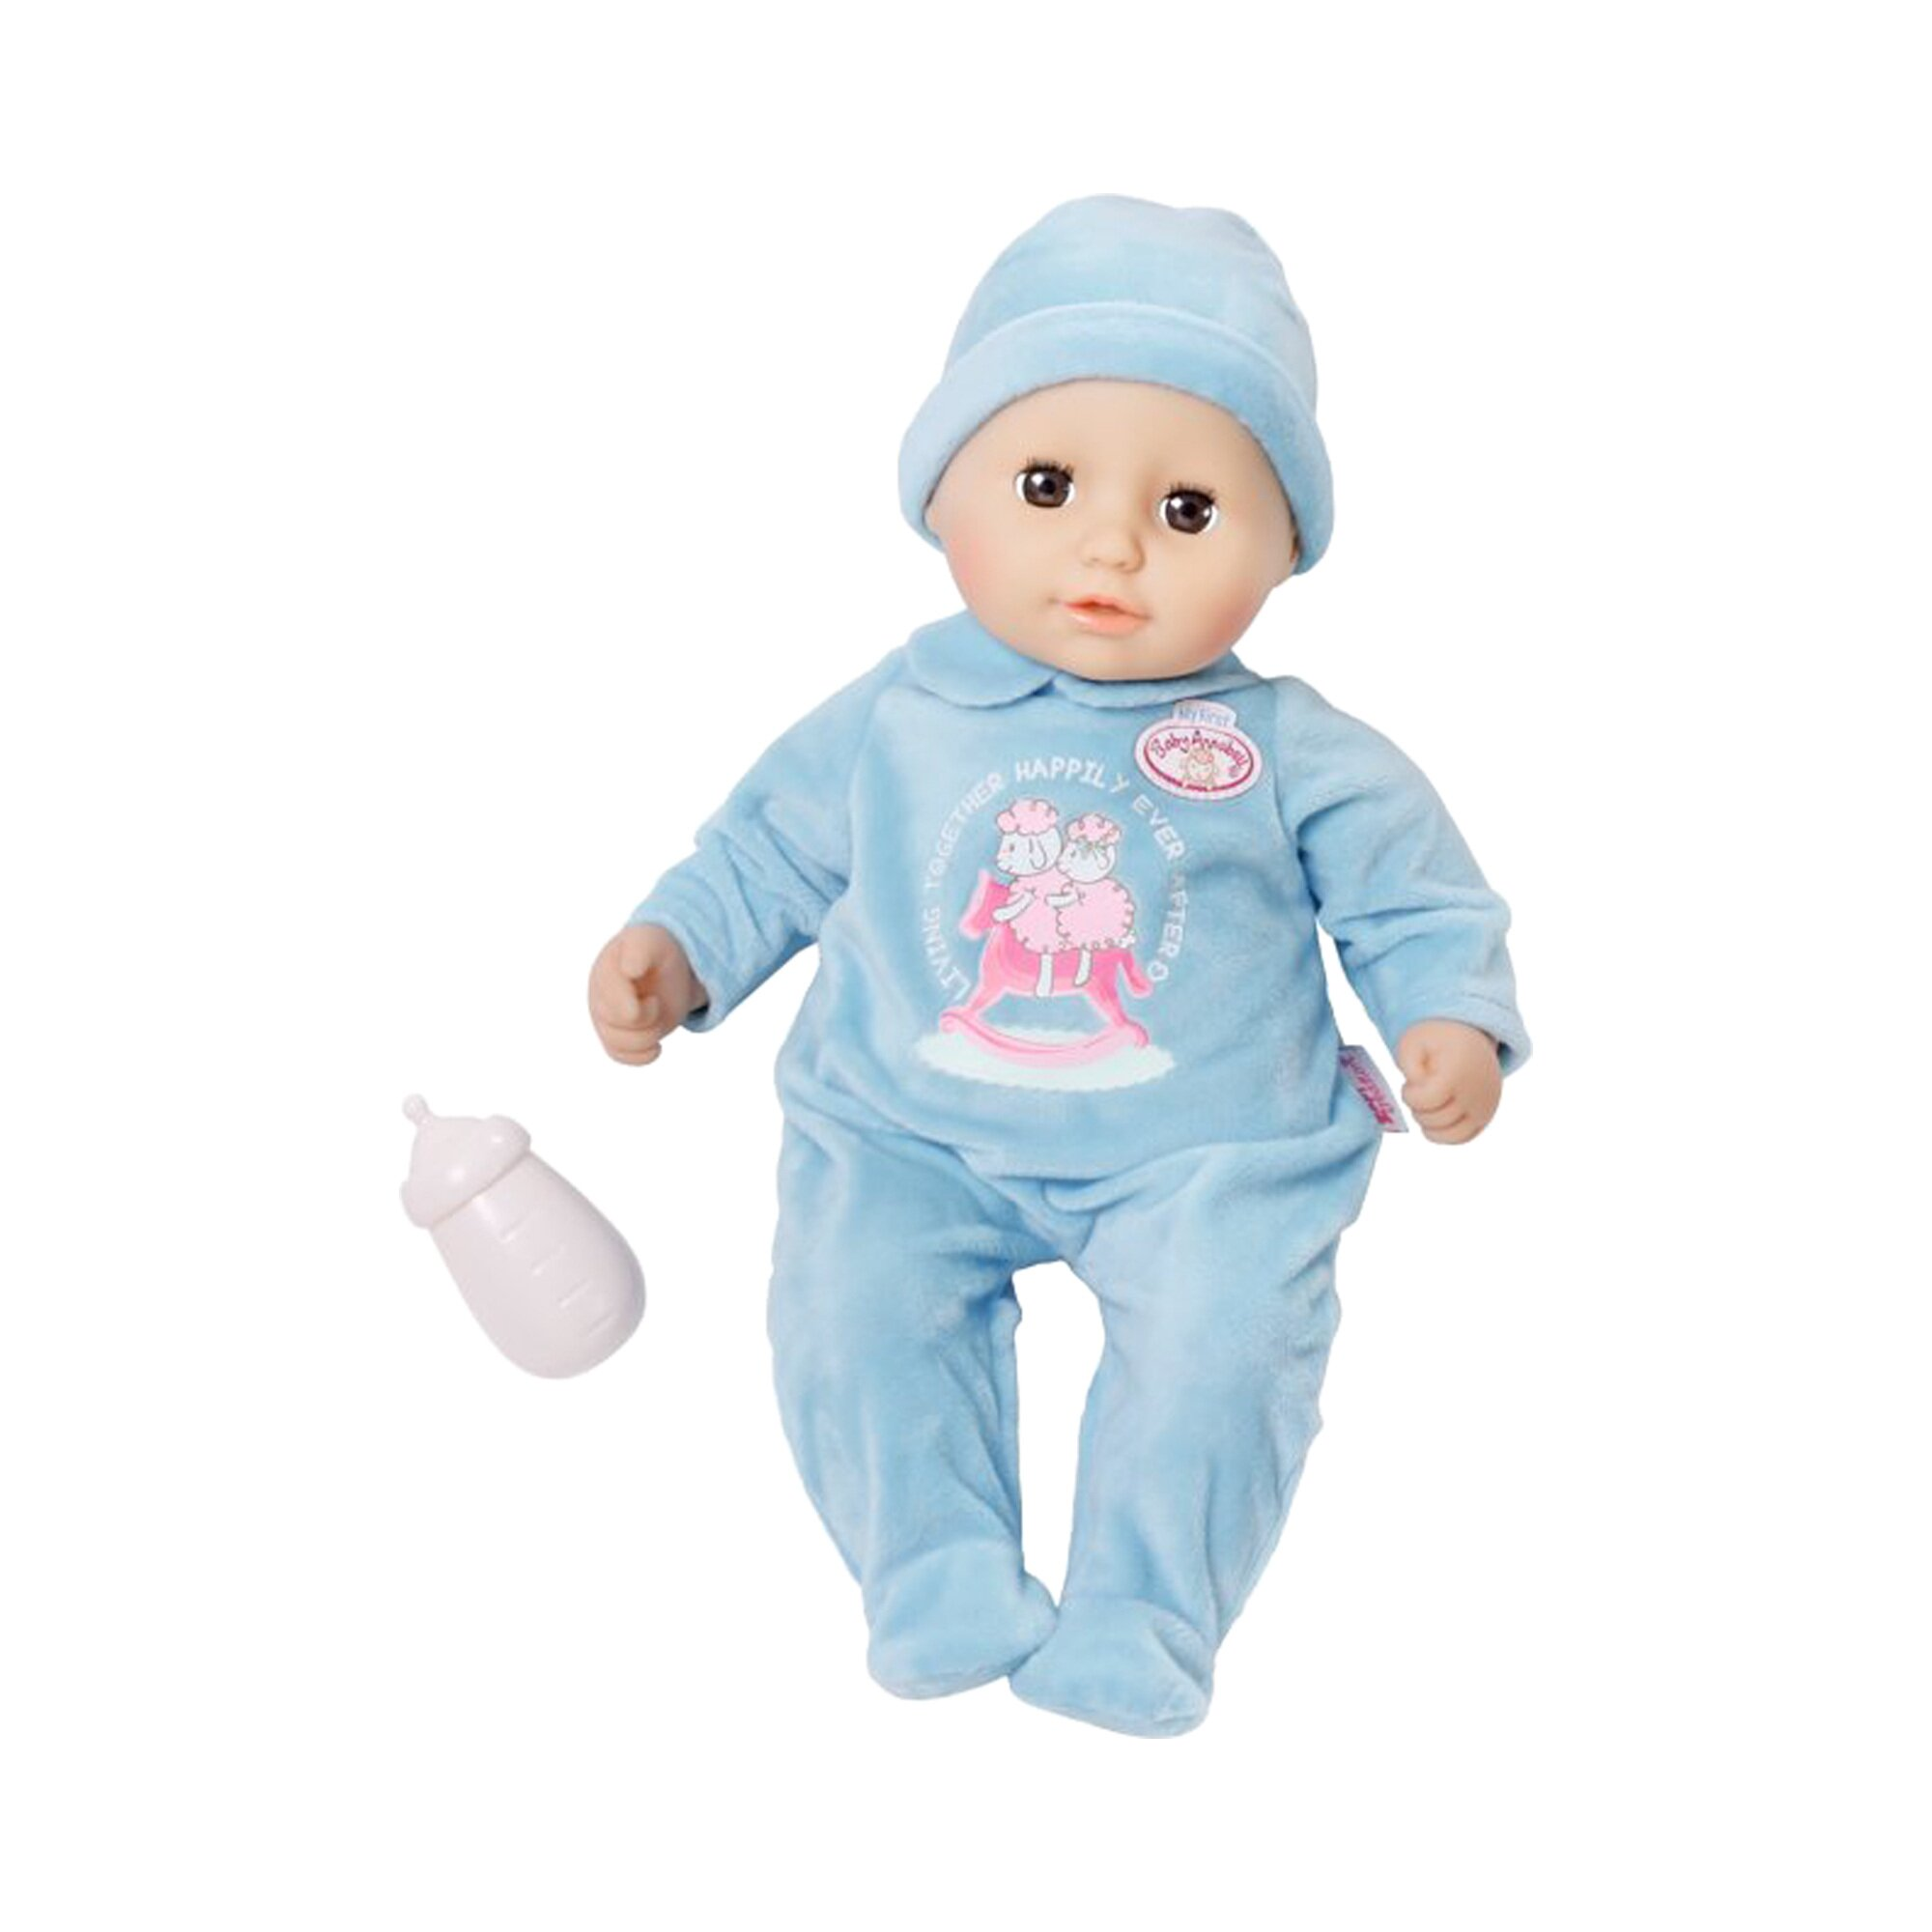 Baby Annabell Puppe Baby Annabell Little Alexander 36cm